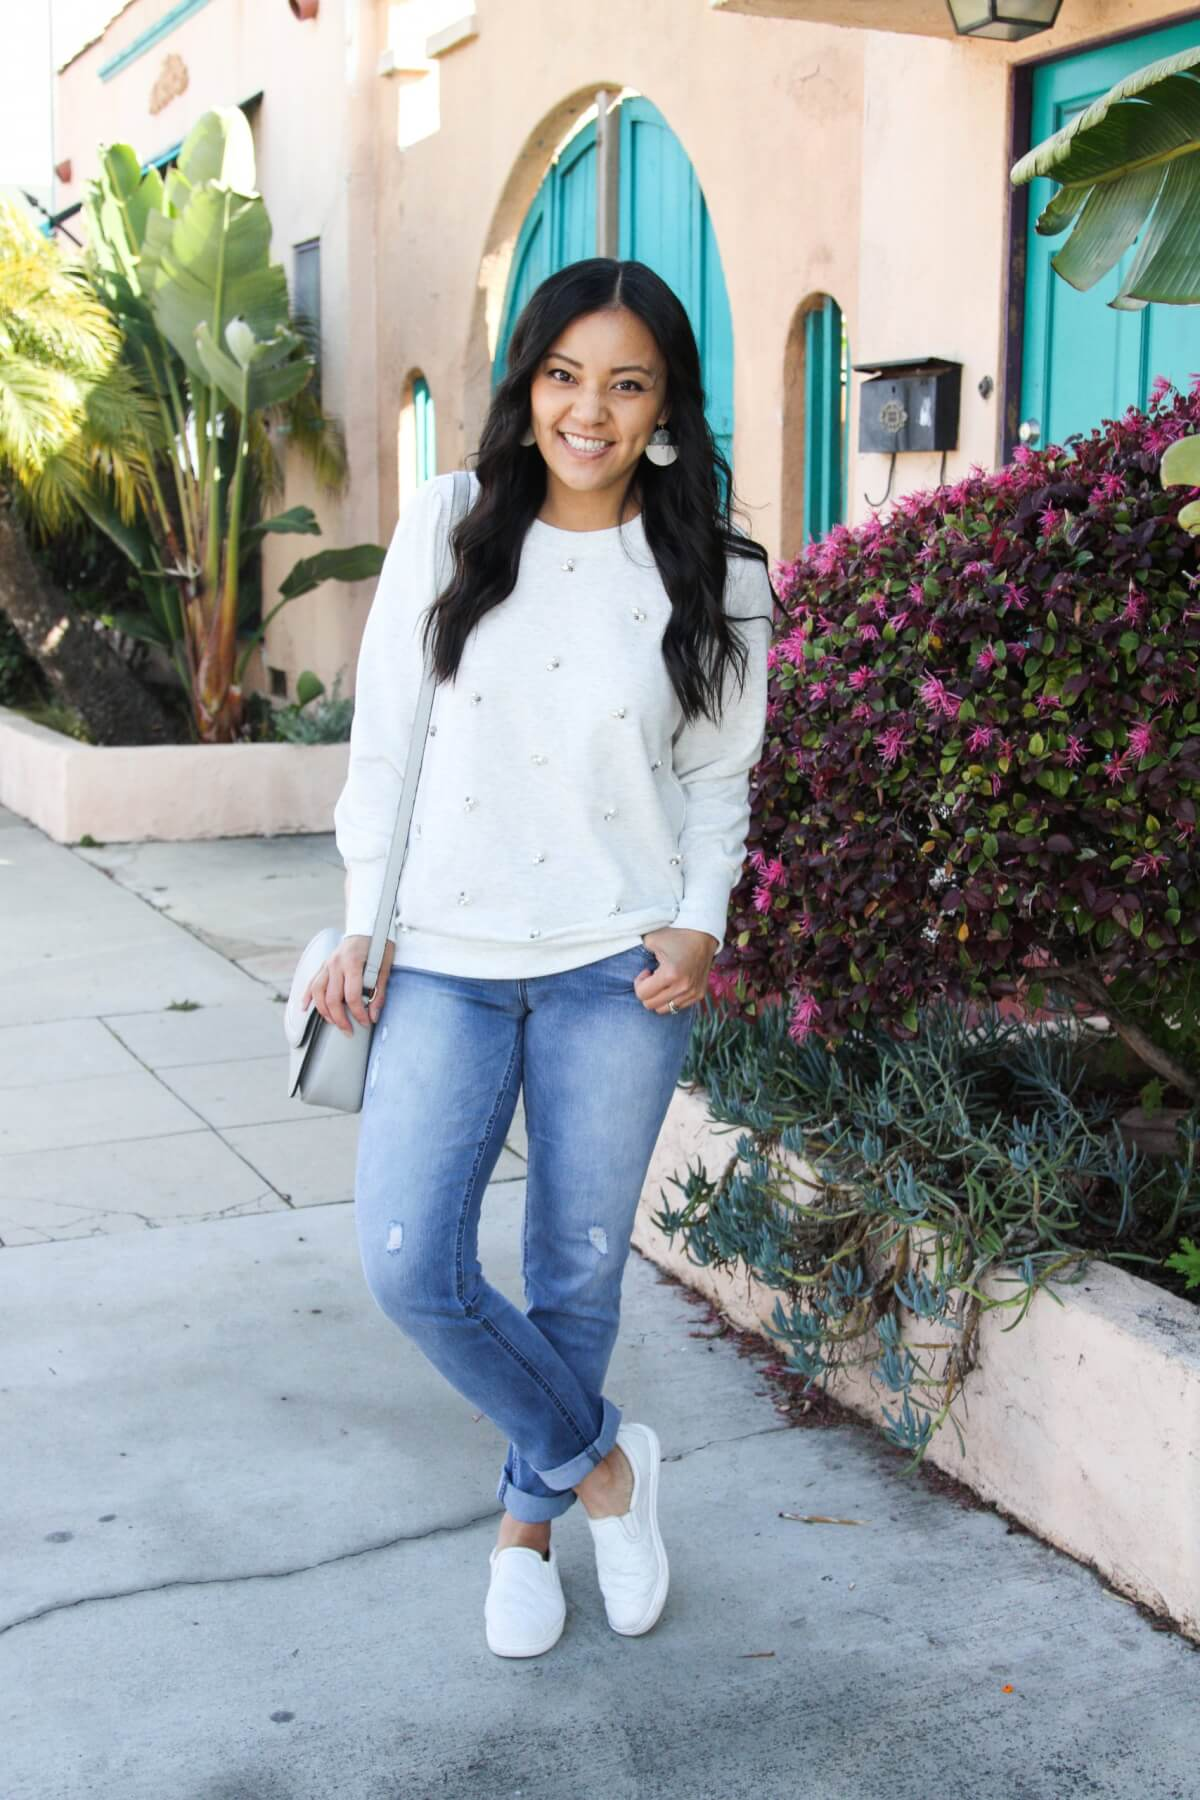 casual spring outfit: embellished sweatshirt, girlfriend jeans, white slip-on sneakers, gray purse